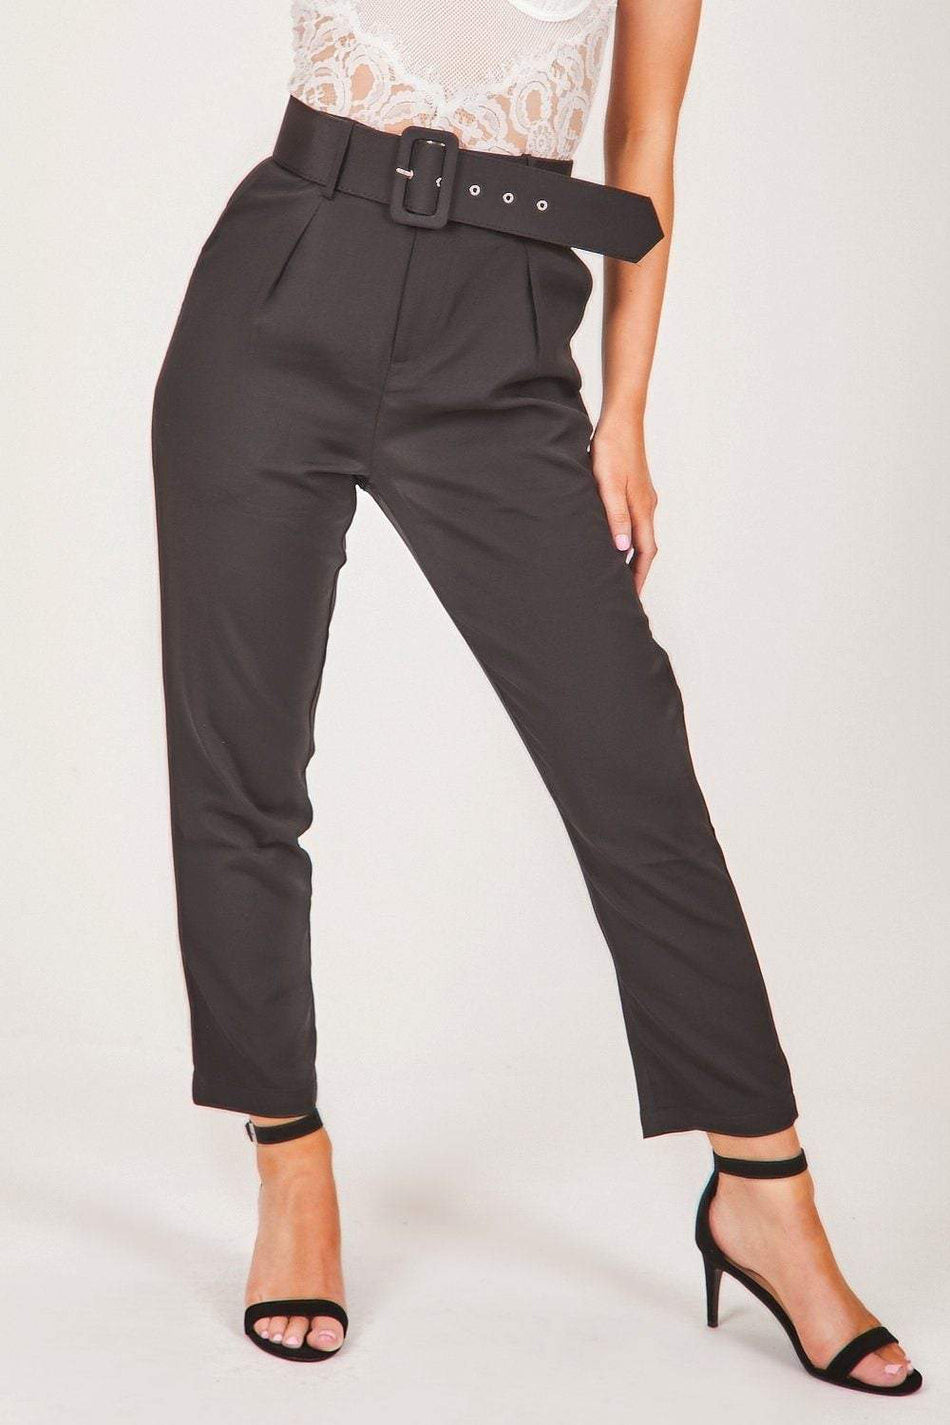 Black Tailored Belted Cigarette Trousers - KATCH ME